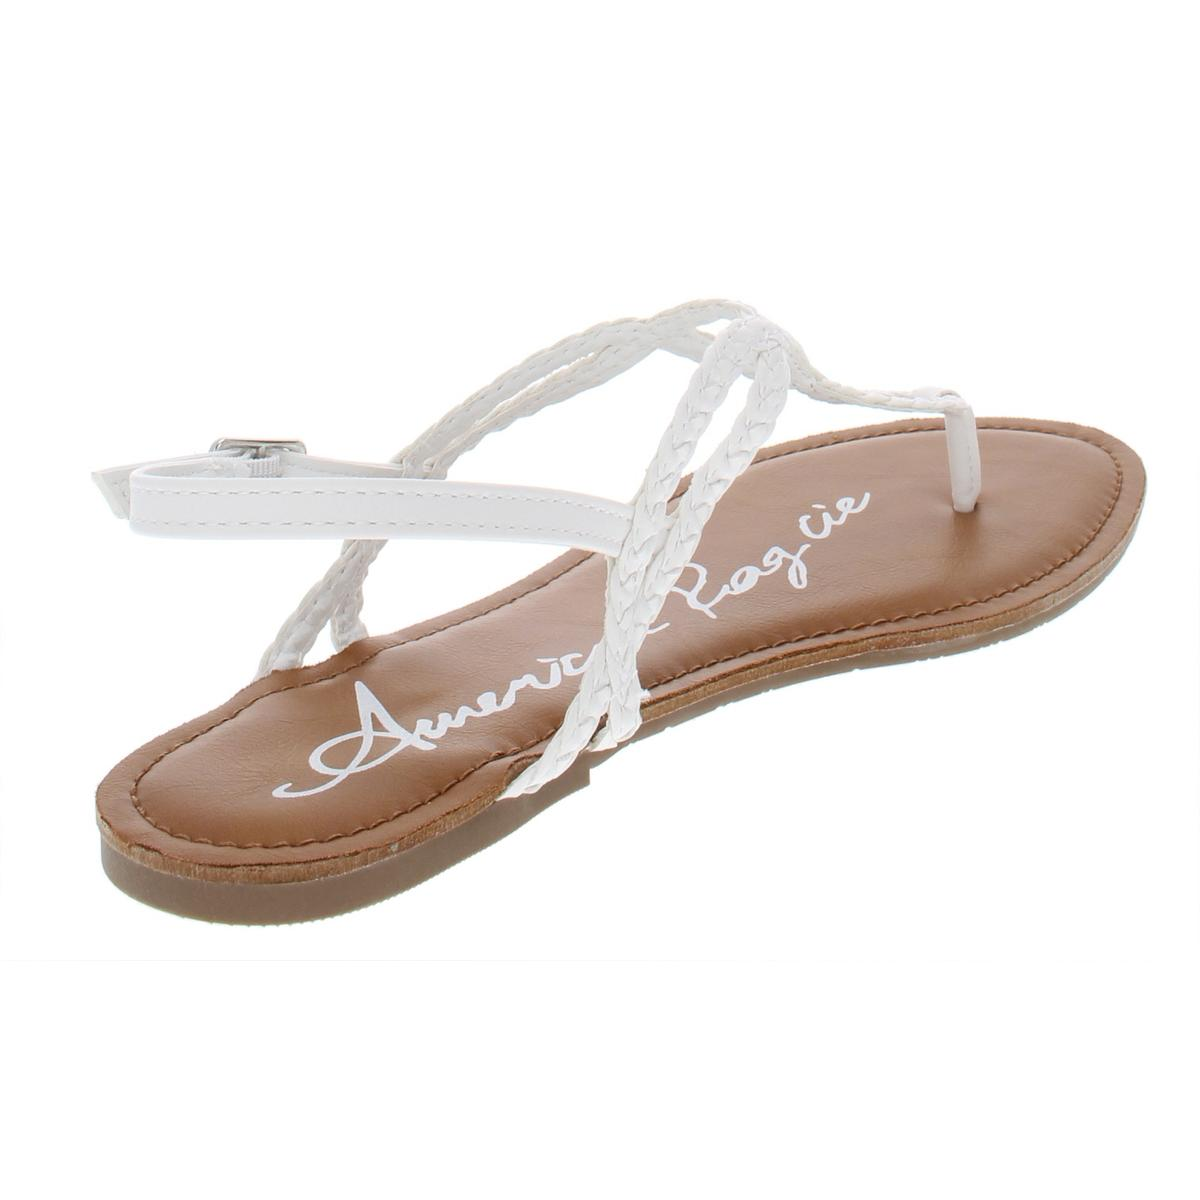 a2af80566d4 American Rag Keira Braided Thong Flat Sandals - White 9 M US for ...